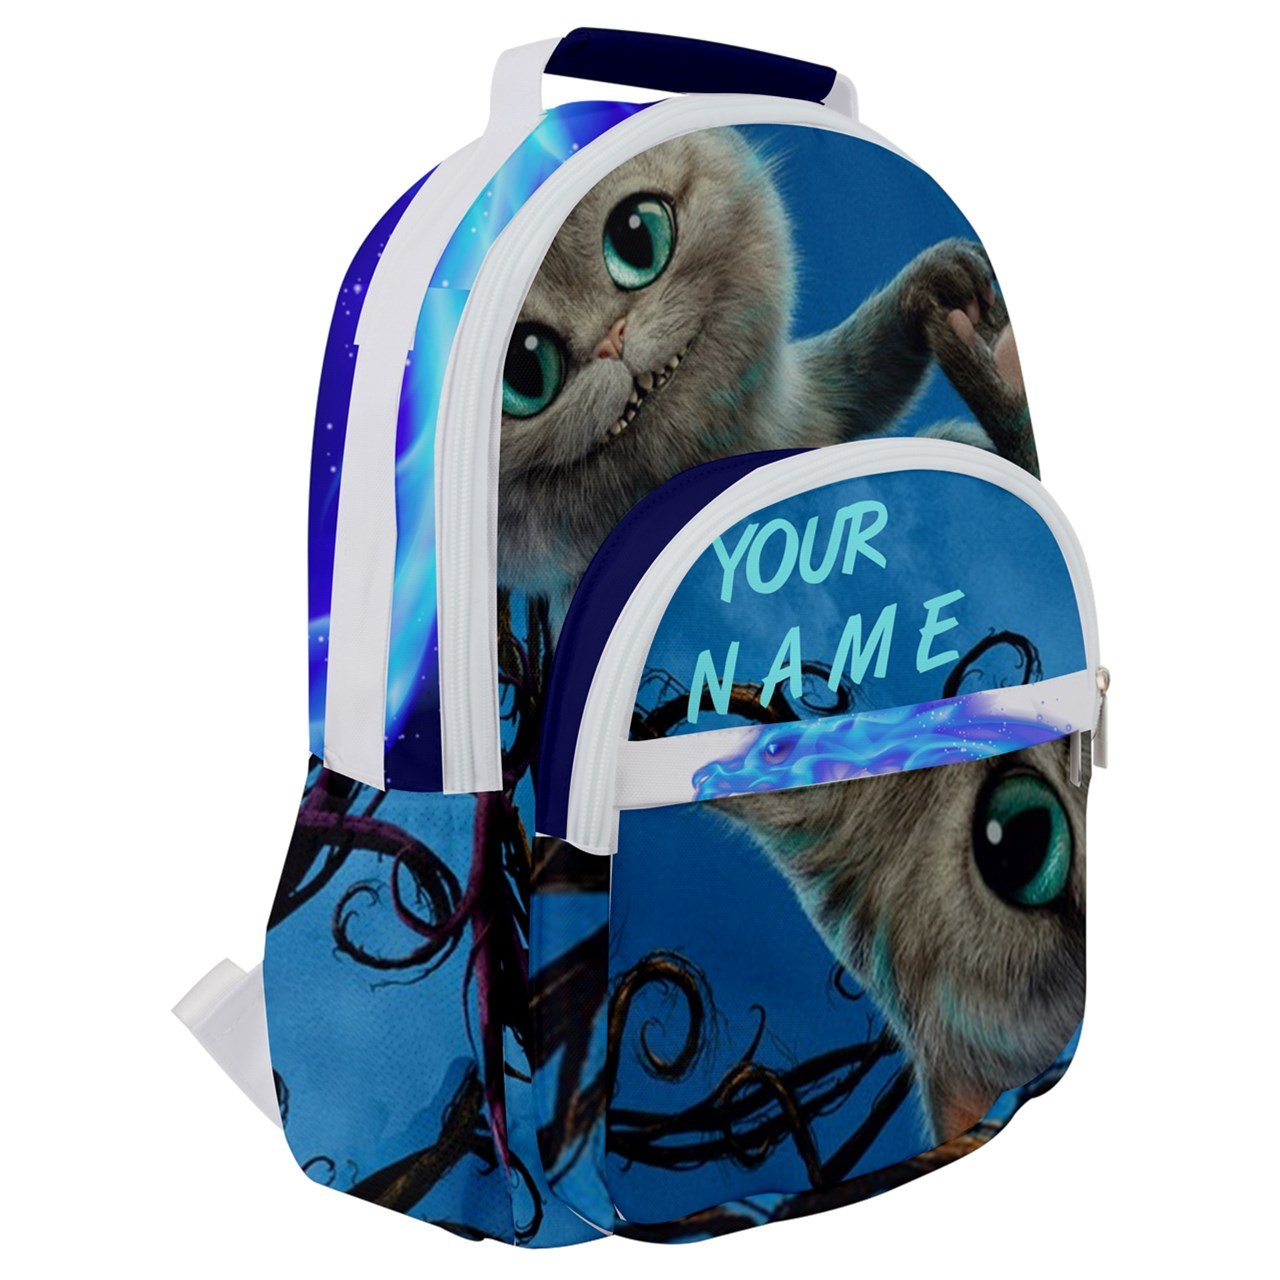 Primary image for Rounded Multi Pocket Backpack kids school bag custom personal name cheshire cat